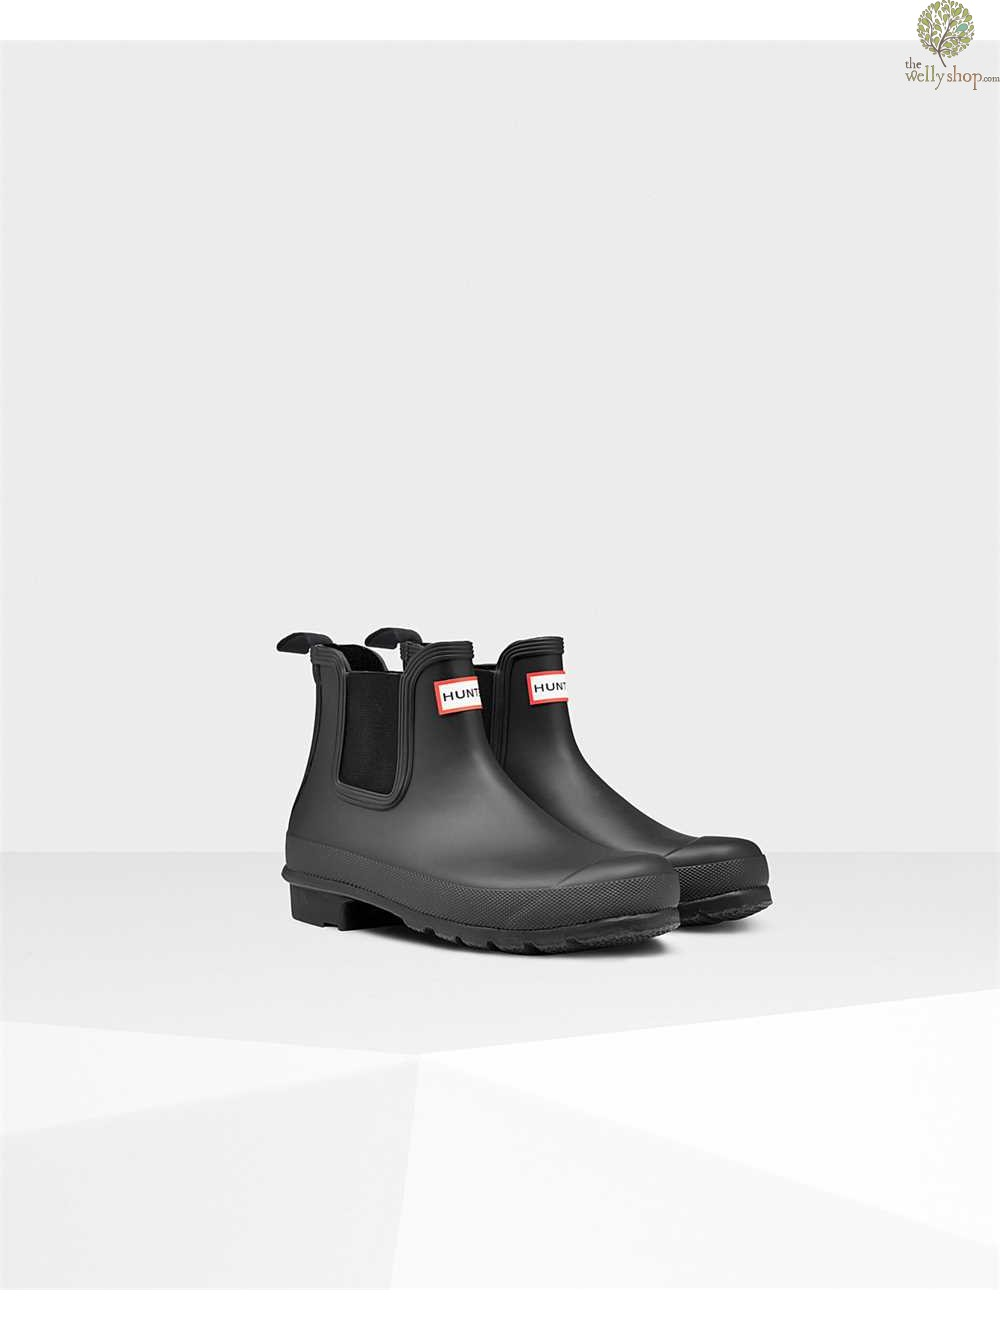 Hunter Women S Original Chelsea Boots Black